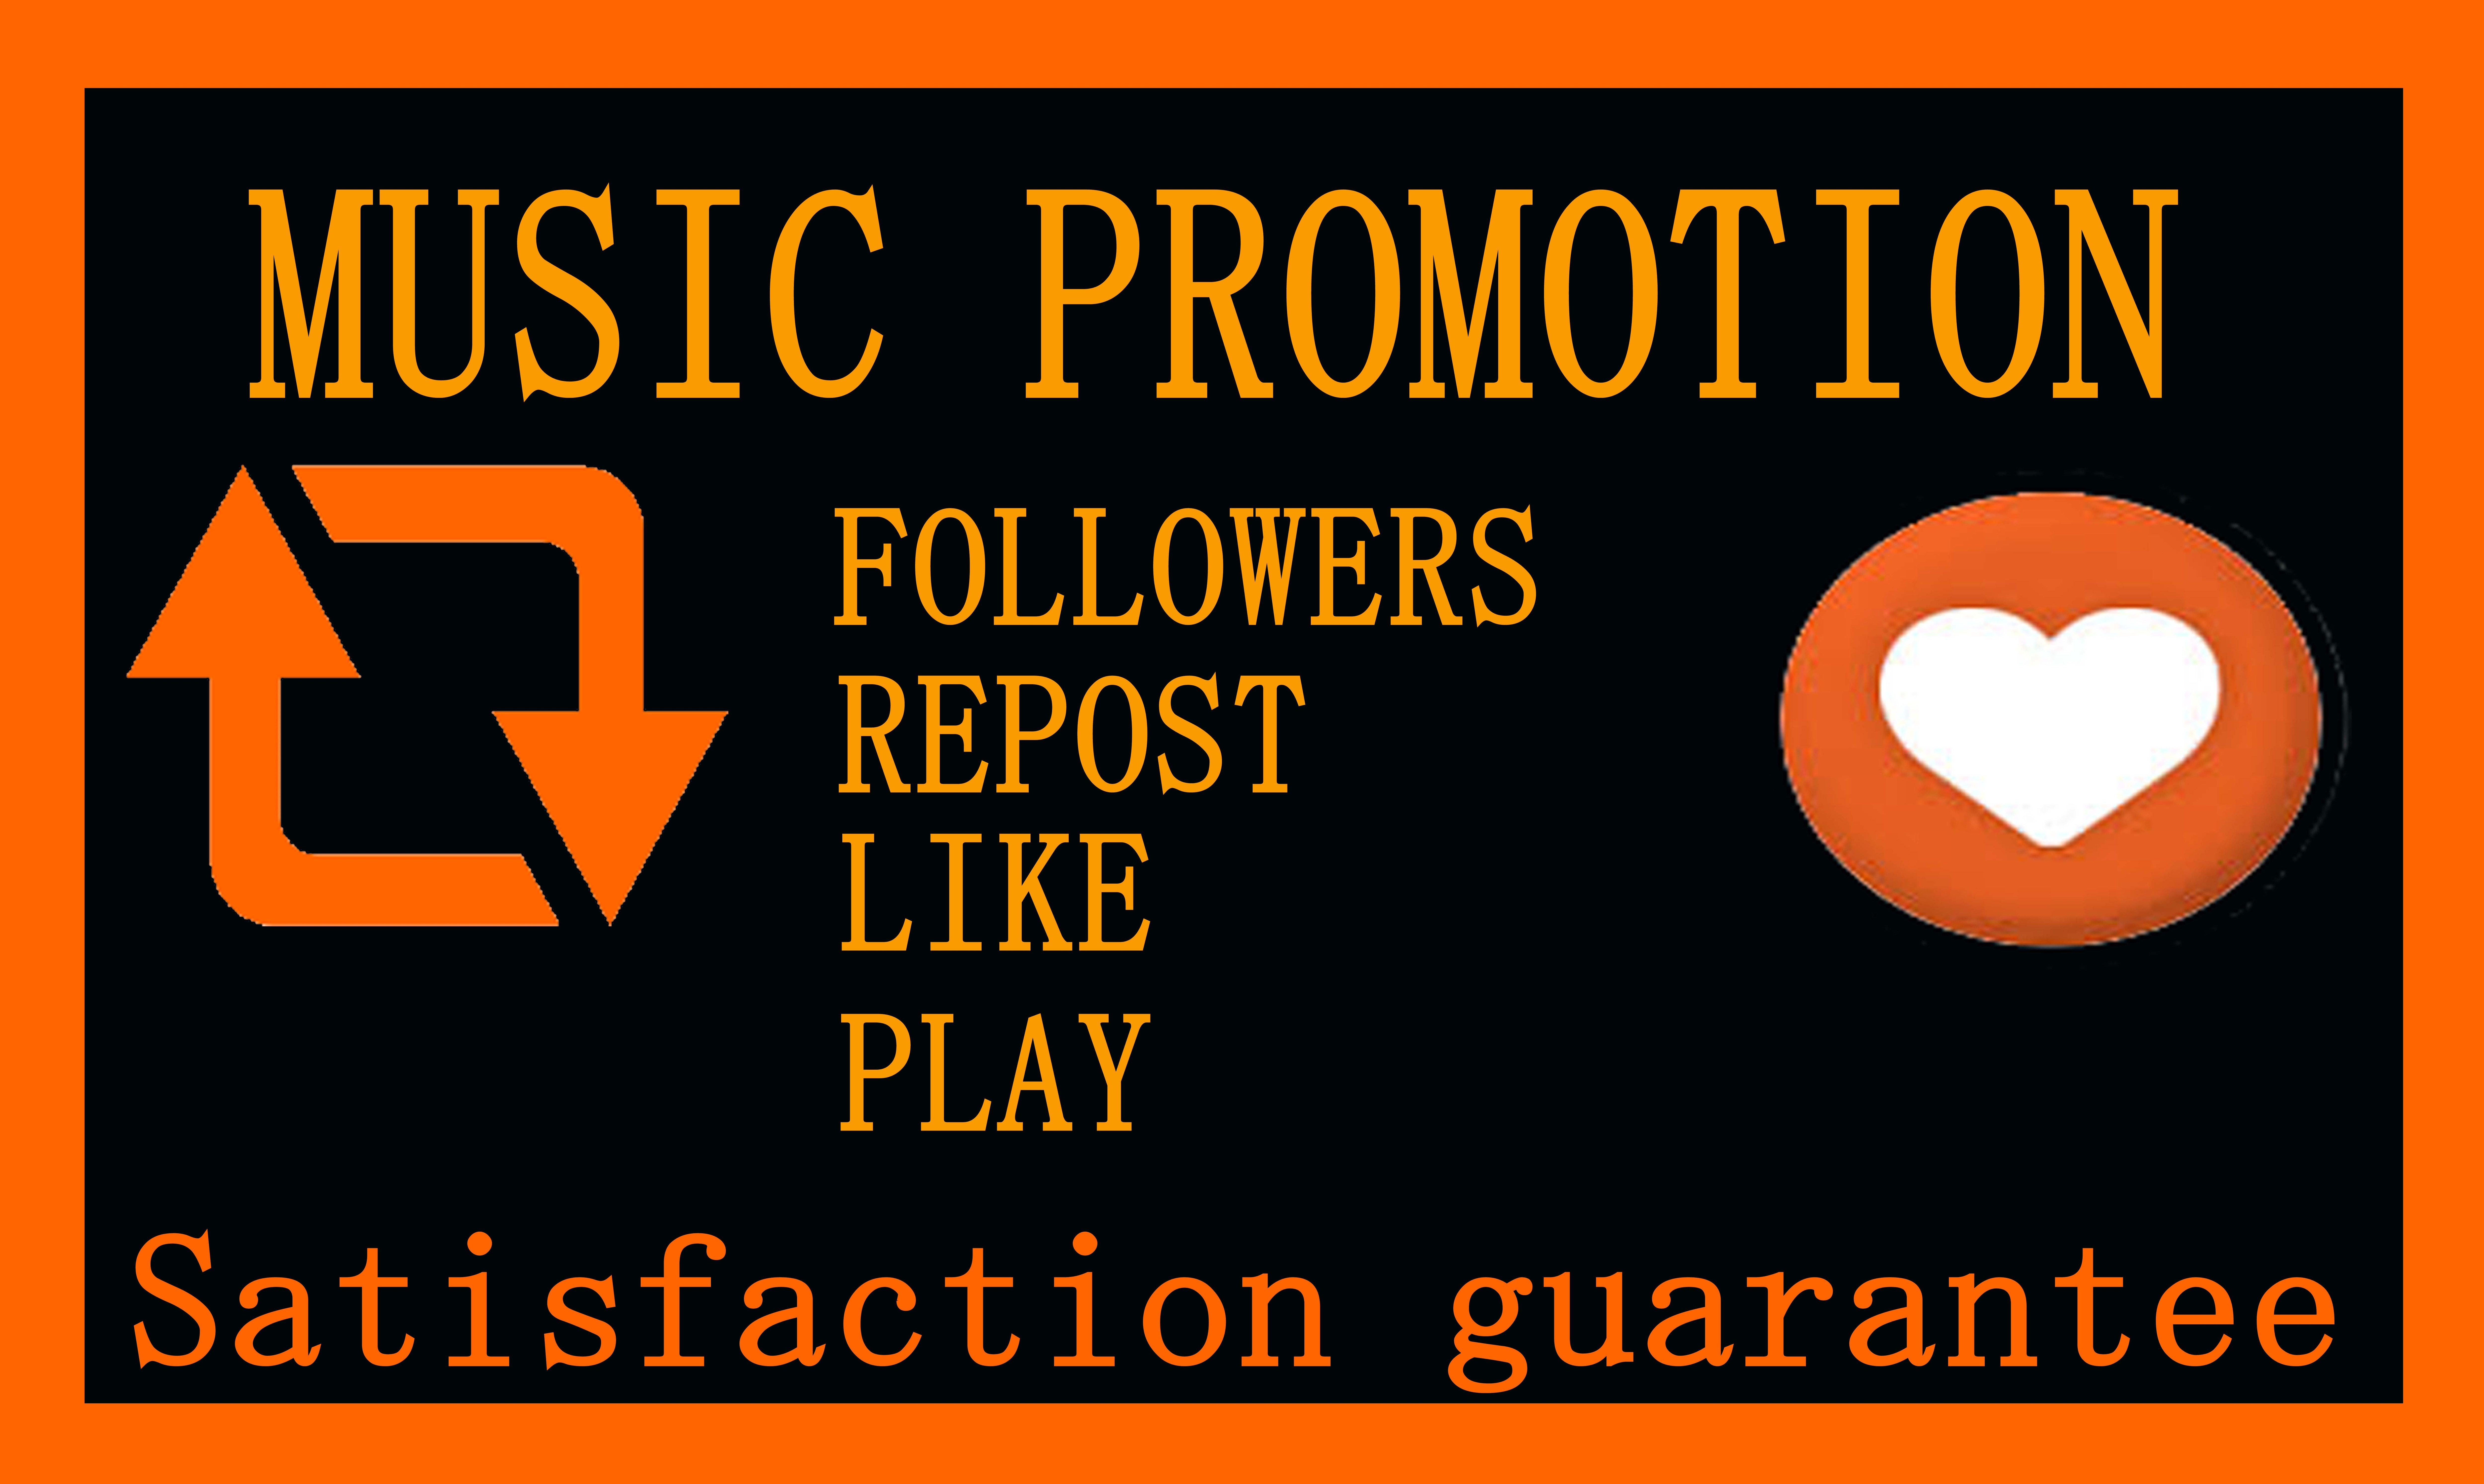 BEST MUSIC 1 MILLIONS PLAY PROMOTION